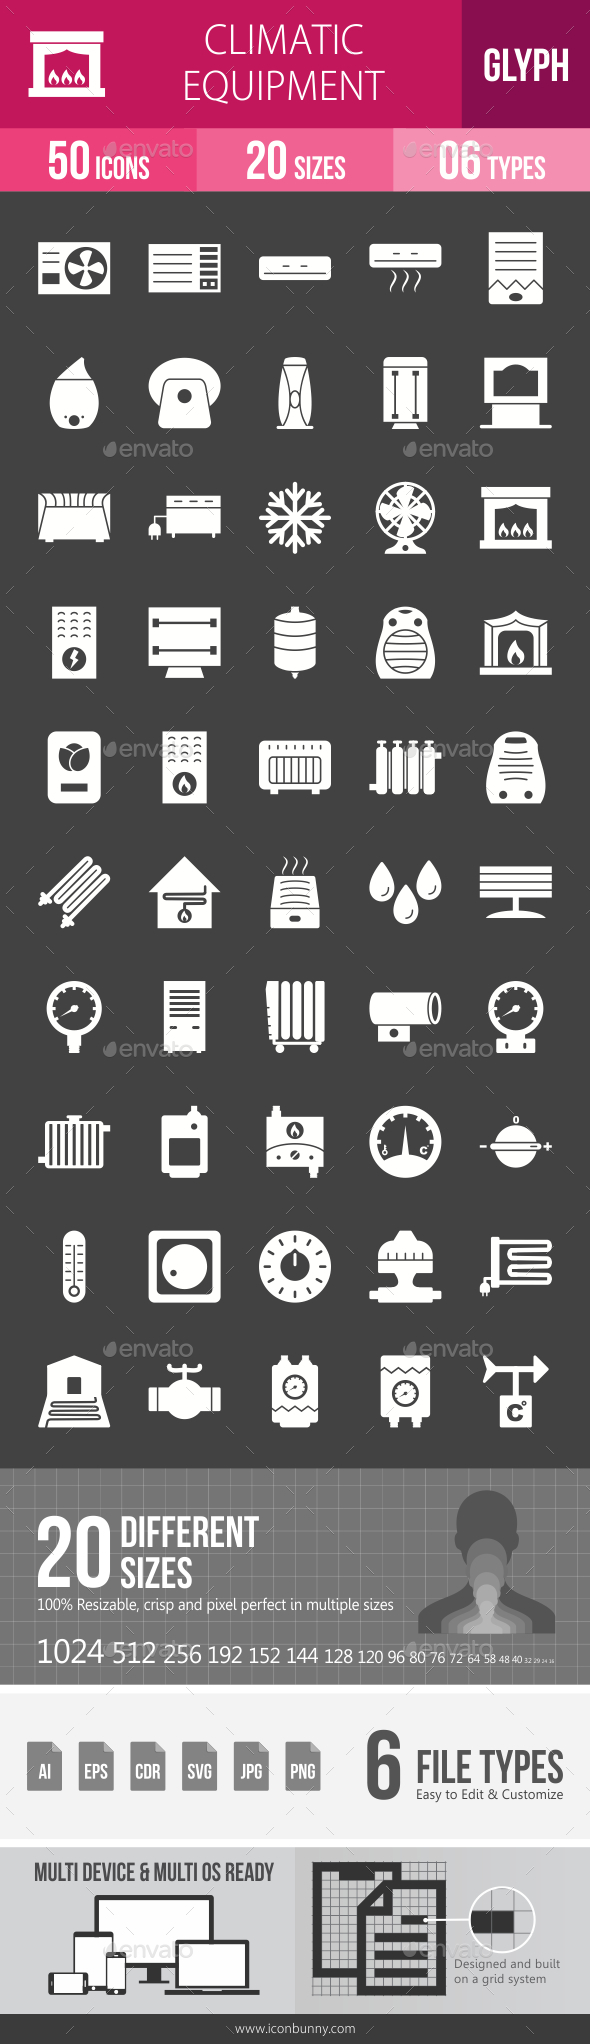 Climatic Equipment Glyph Inverted Icons - Icons